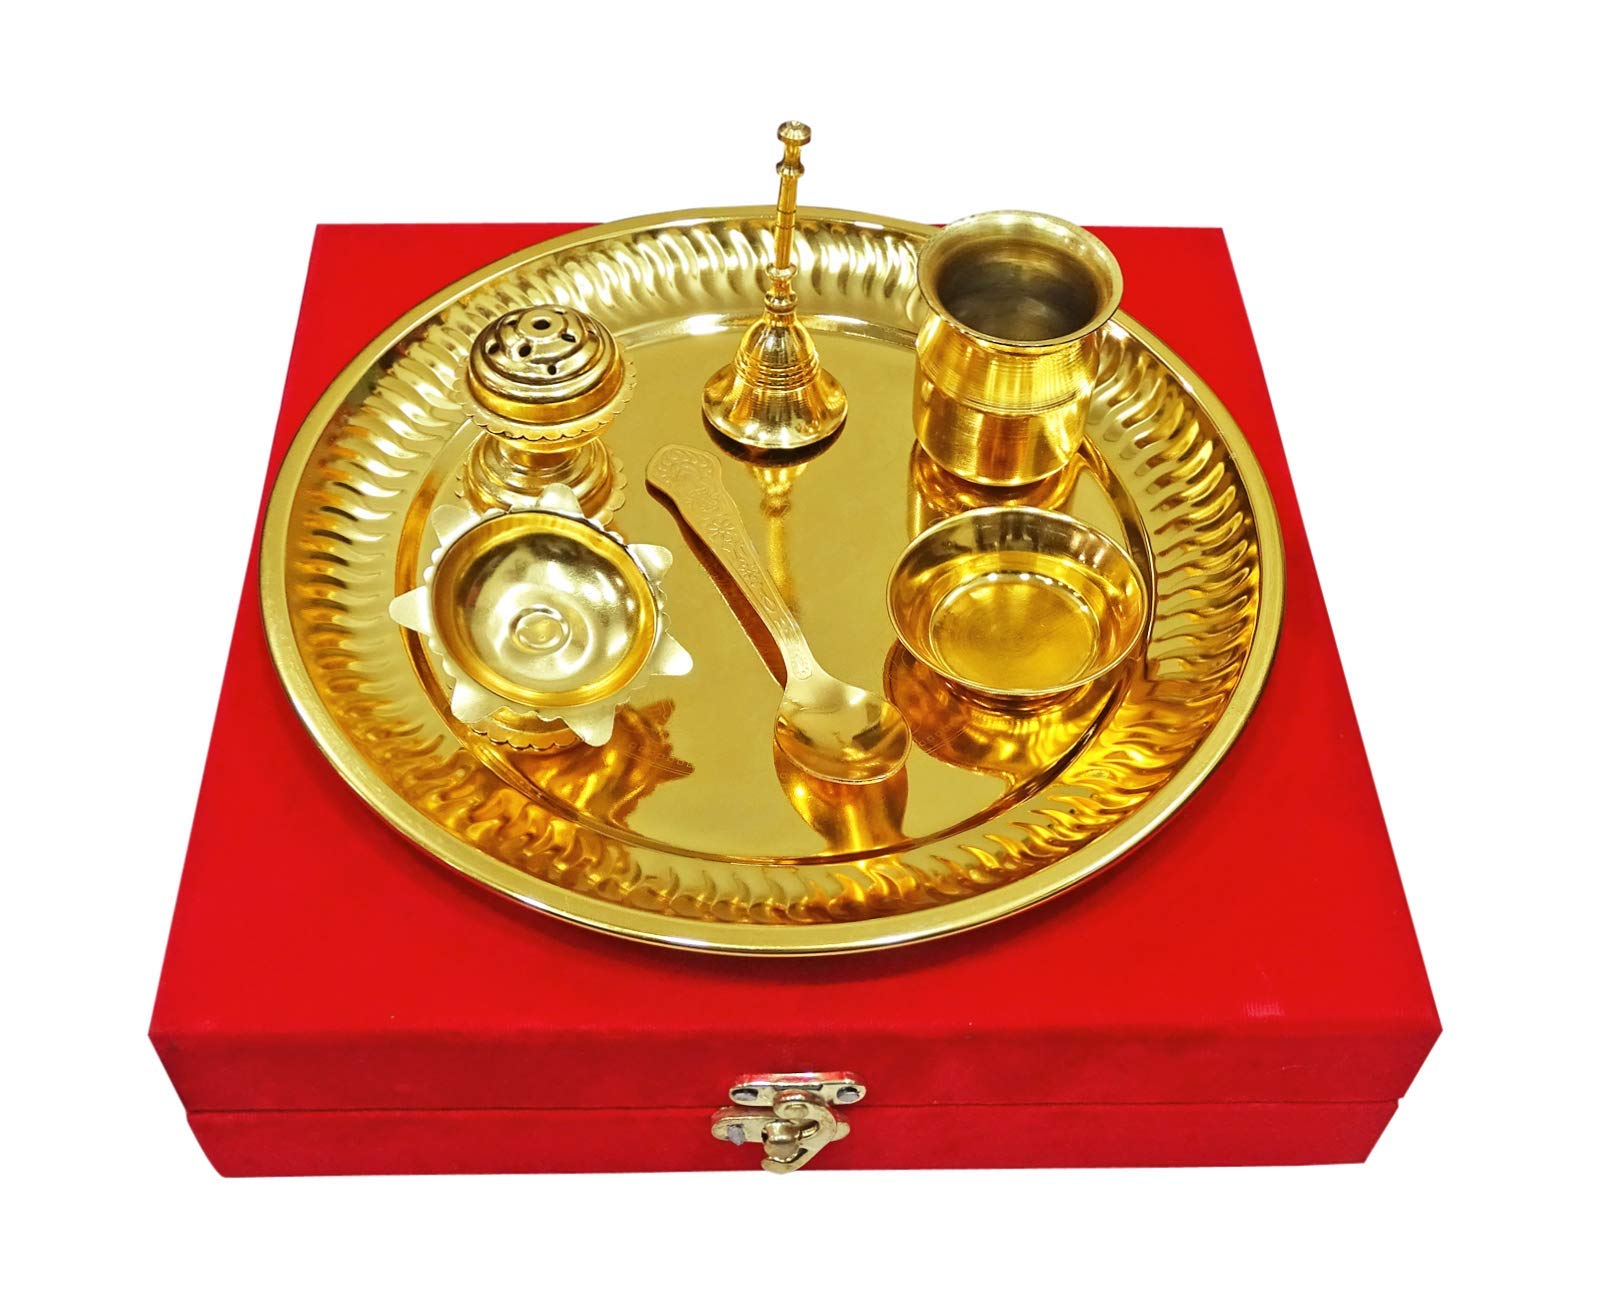 Peegli Gold Plated Pooja Thali Set 7 Pieces with Red Velvet Box Indian Occasional Gift Puja Thali 8.5 Inch Traditional Handcrafted Thali Set for Pooja Arti